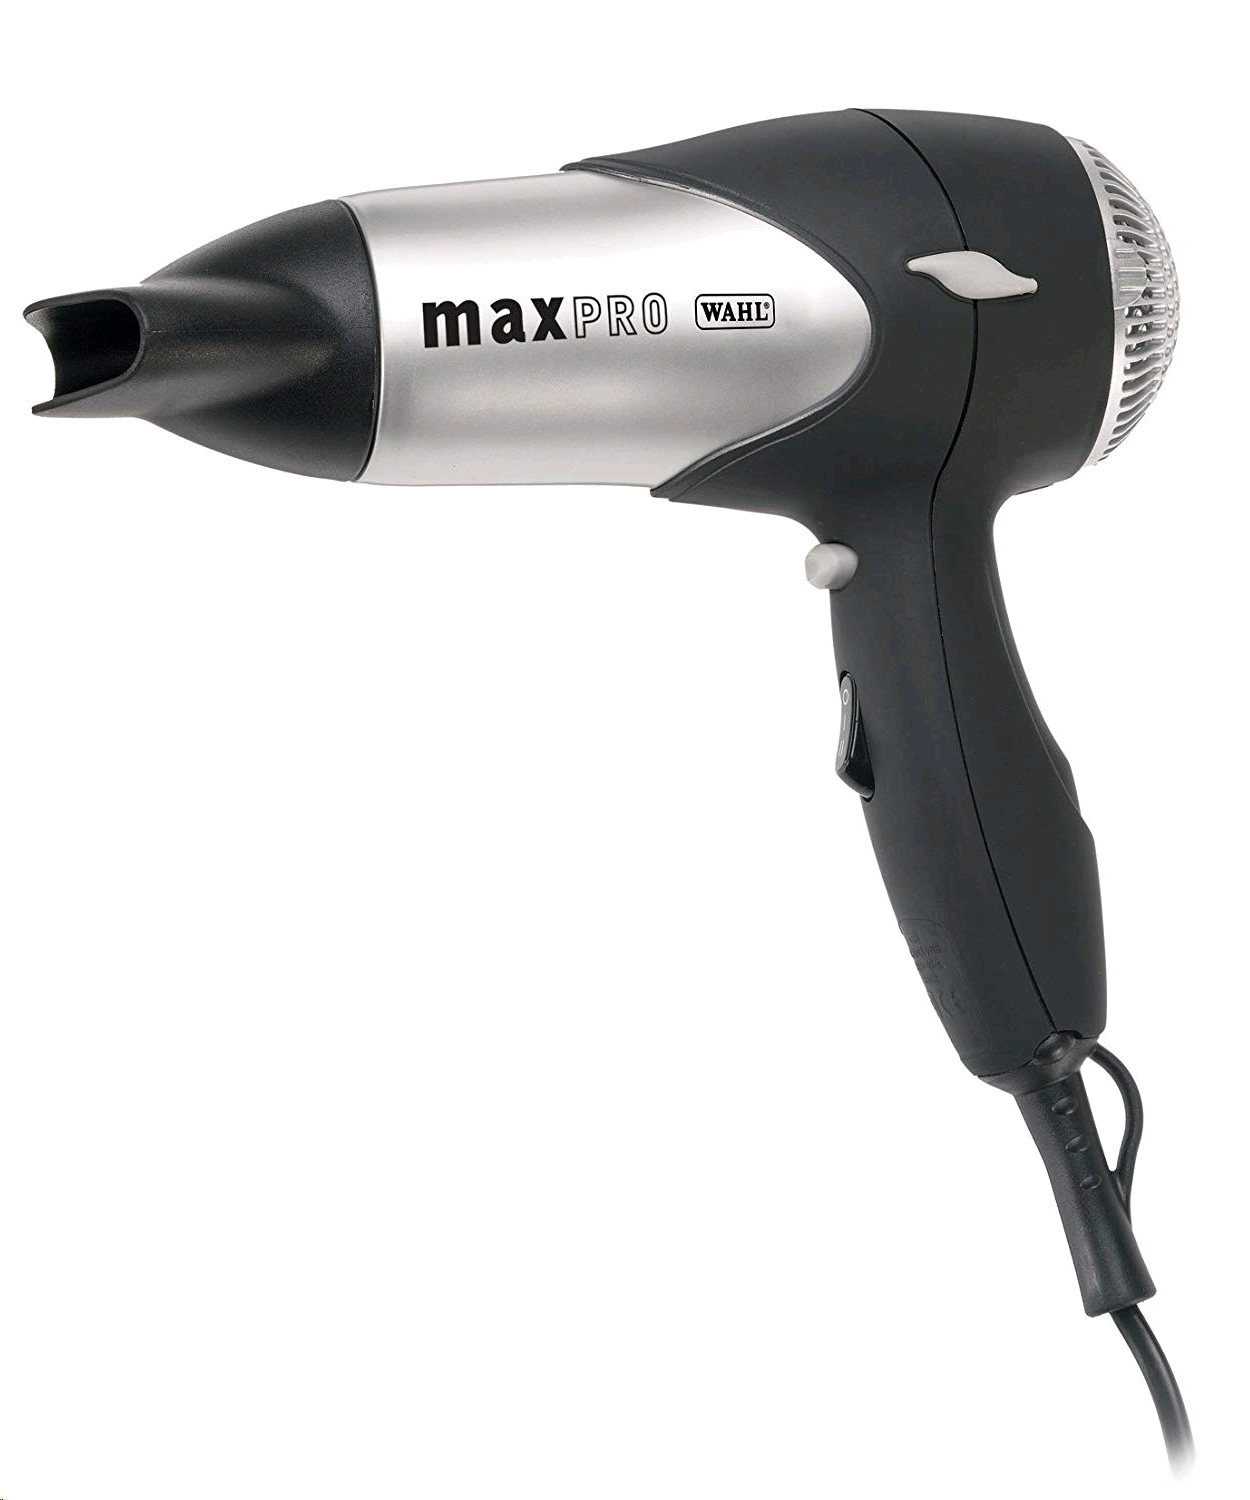 Wahl Hairdryer 1600Watts 2 Speed with Diffuser